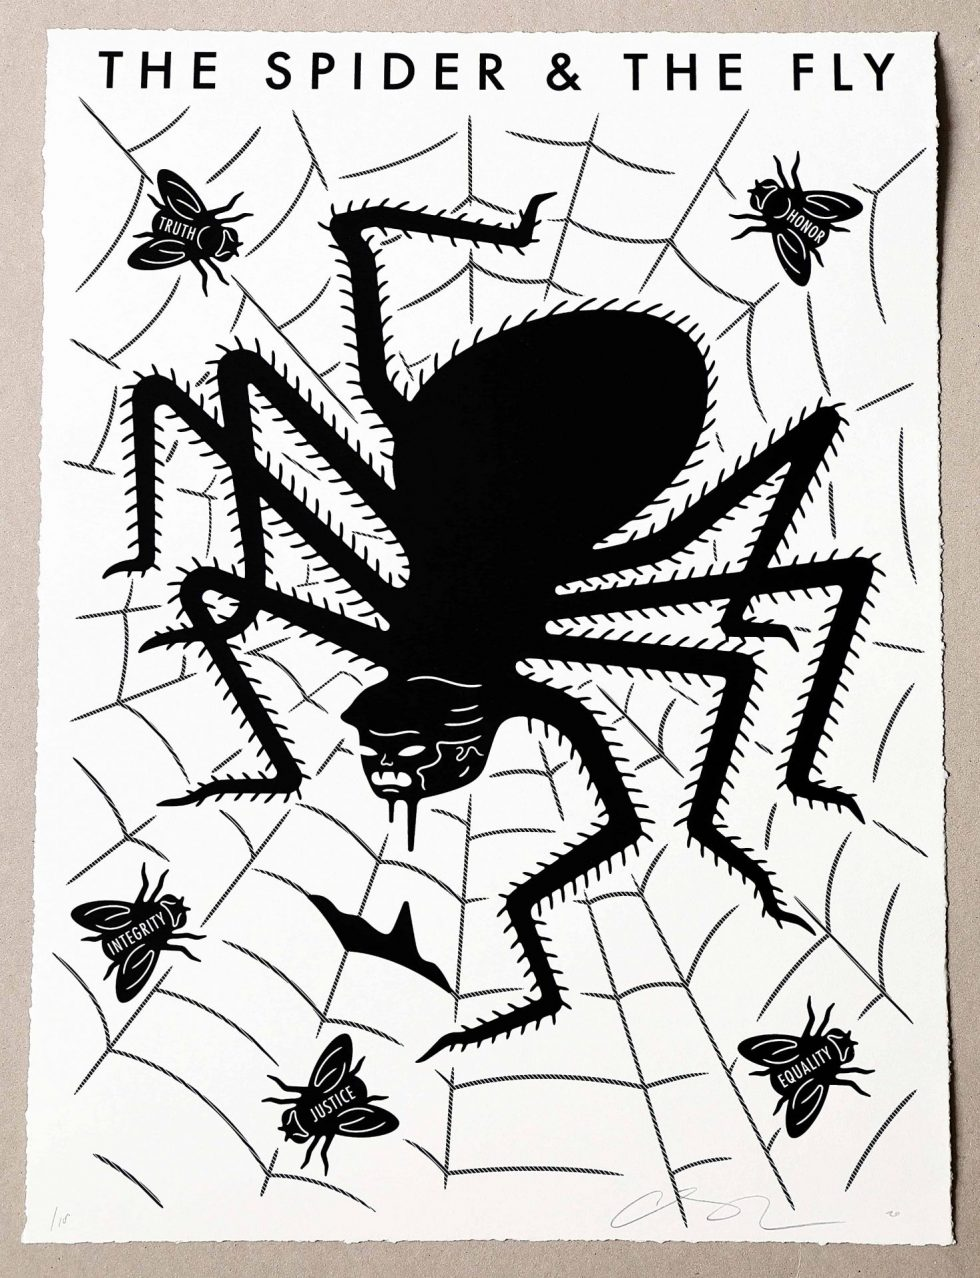 Lot #9523 – Cleon Peterson The Spider & The Fly Screen Print Black & White LTD ED 100 Art Cleon Peterson